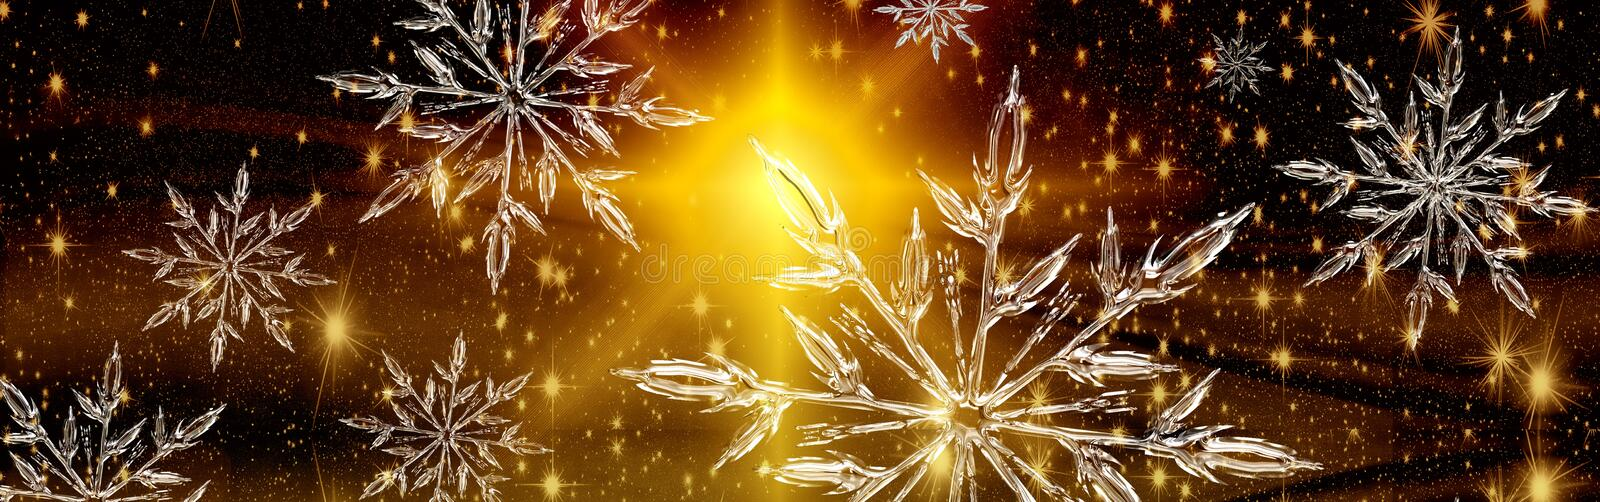 Christmas ice crystal banner, background stock photography